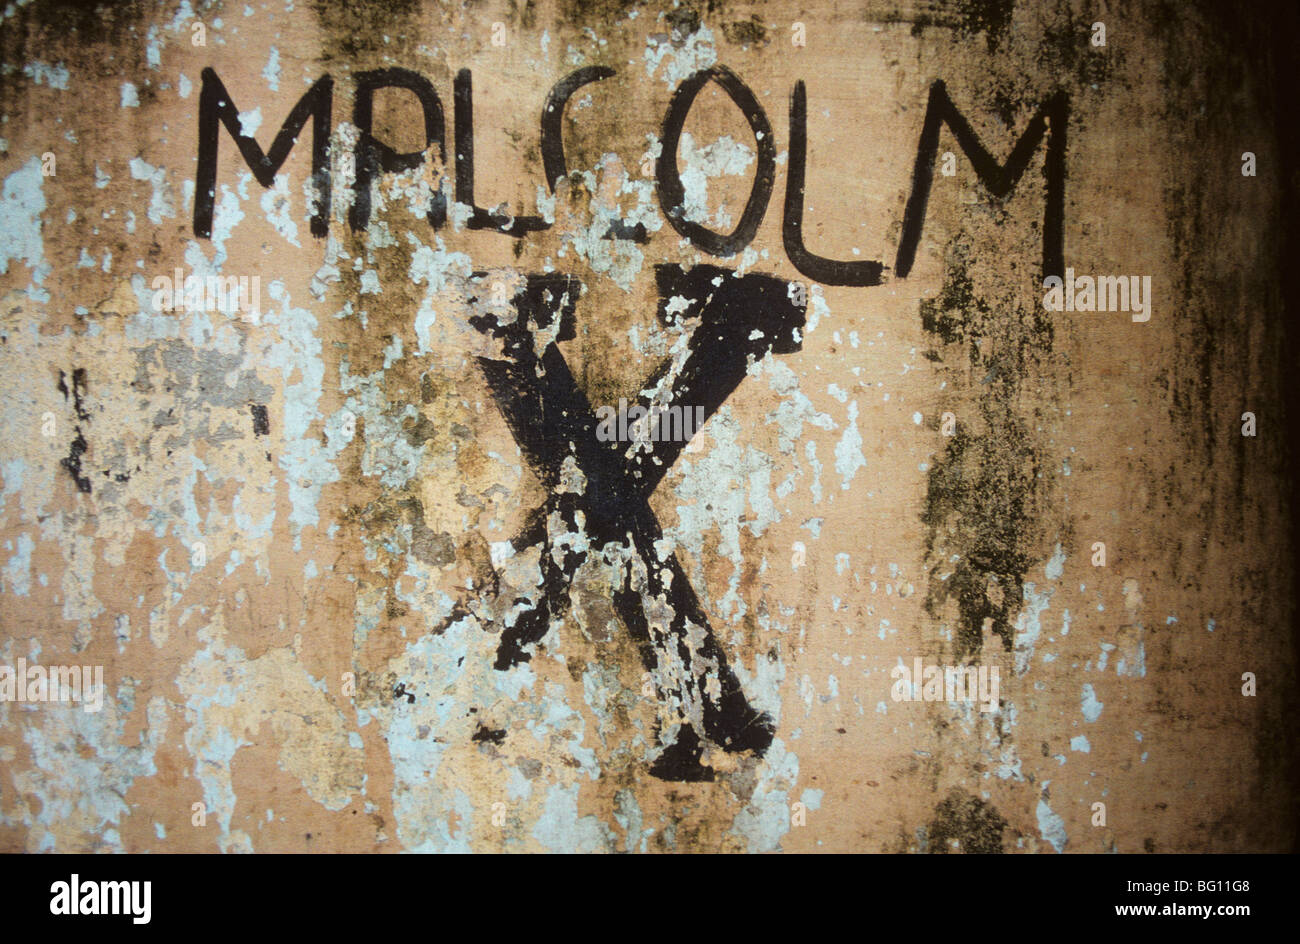 Malcom X written on a wall in Guatemala where, like in many parts of the less developed world and where certain - Stock Image